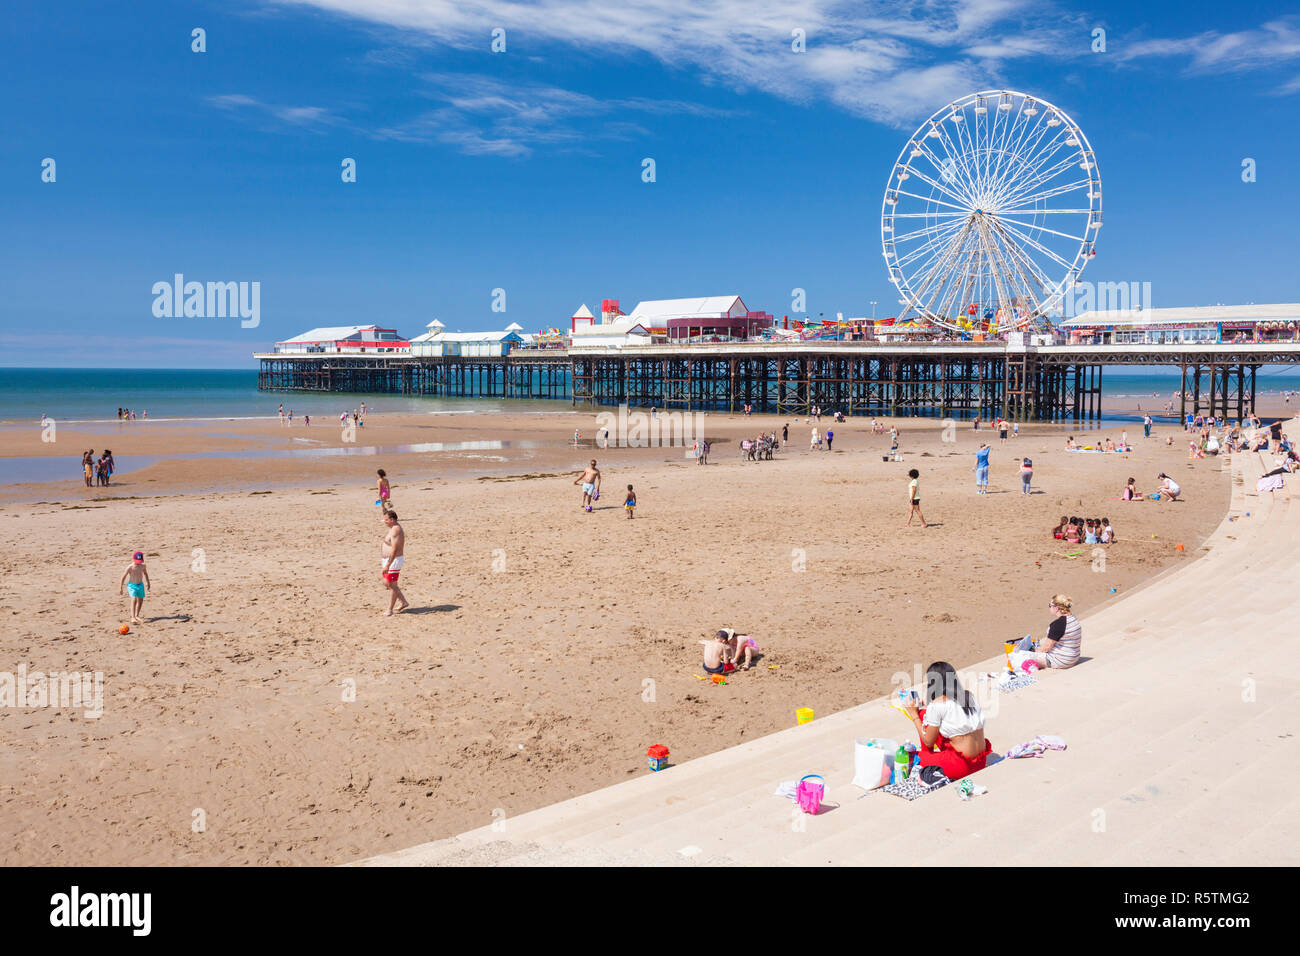 Blackpool beach summer ferris wheel on Blackpool central pier Blackpool with people on the sandy beach at Blackpool Lancashire England UK GB Europe - Stock Image